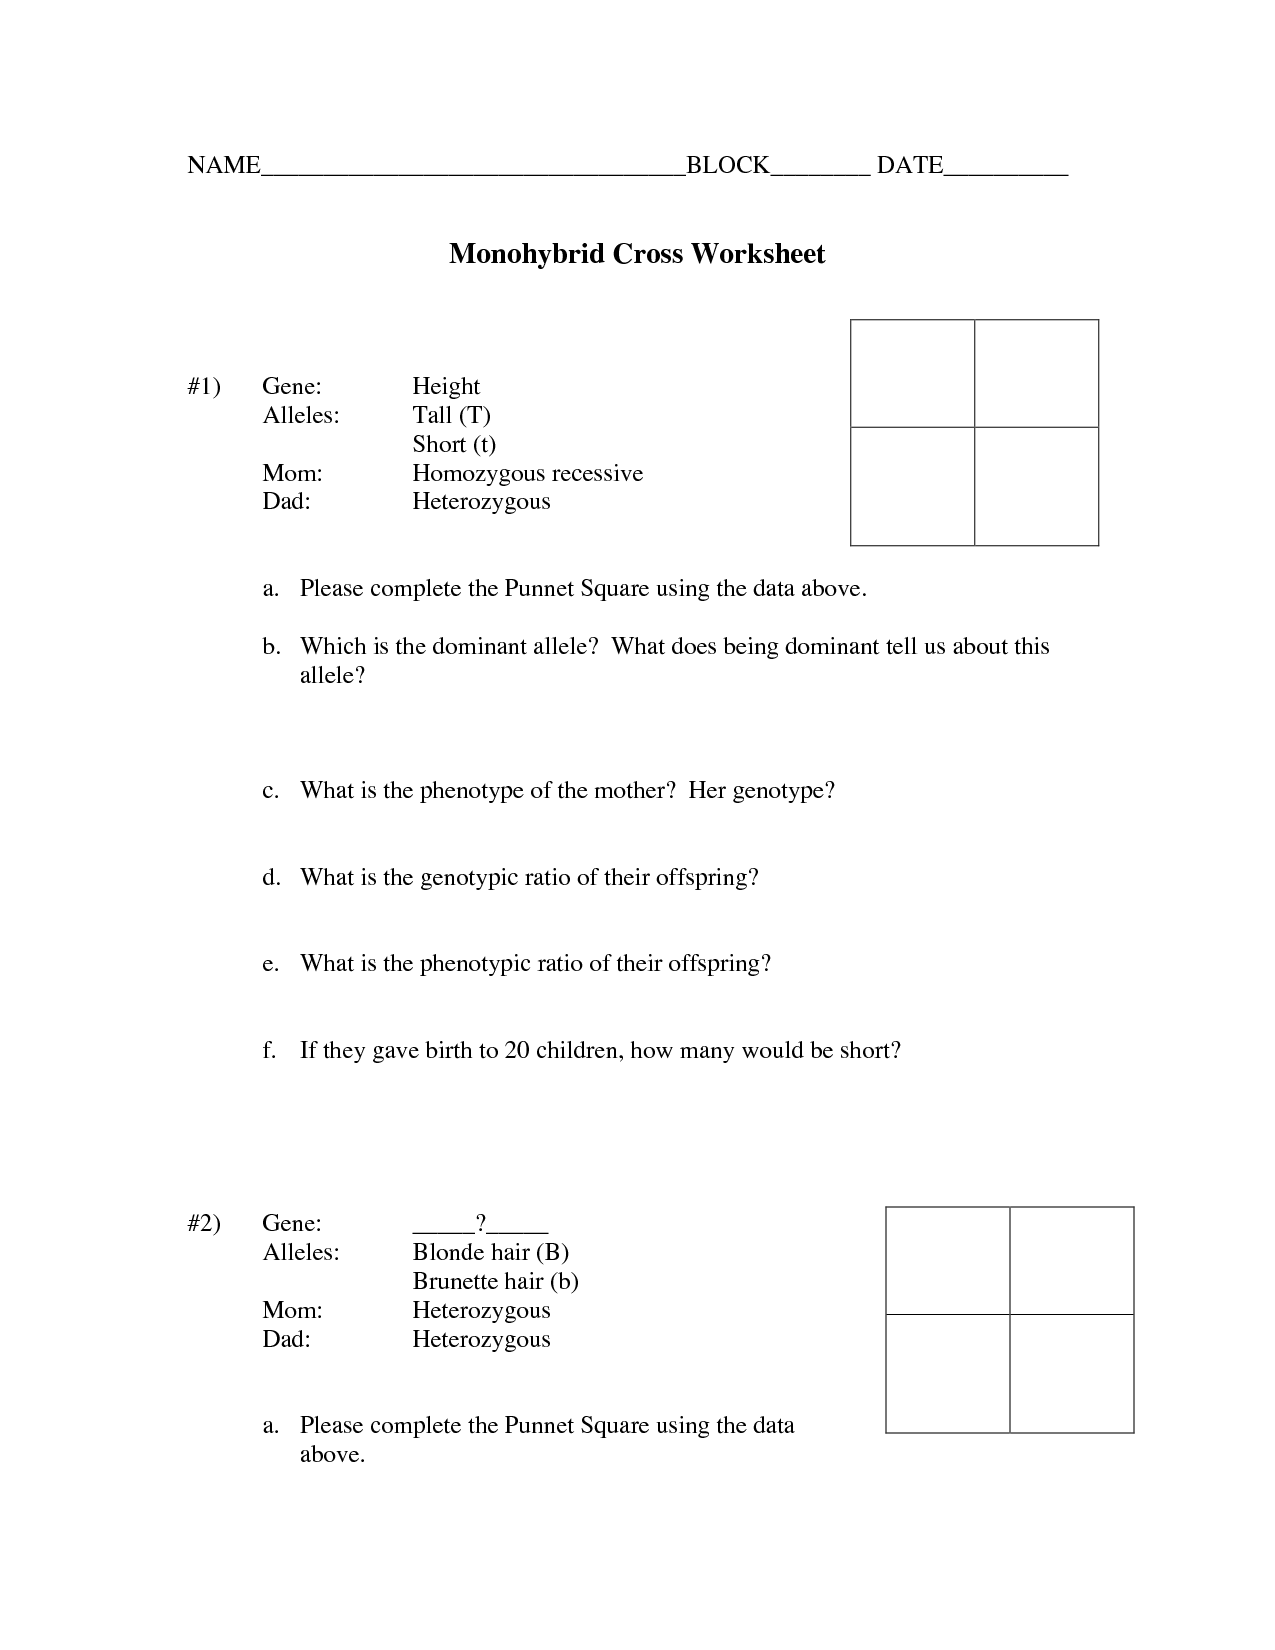 Dihybrid Cross Worksheet Answers - Promotiontablecovers